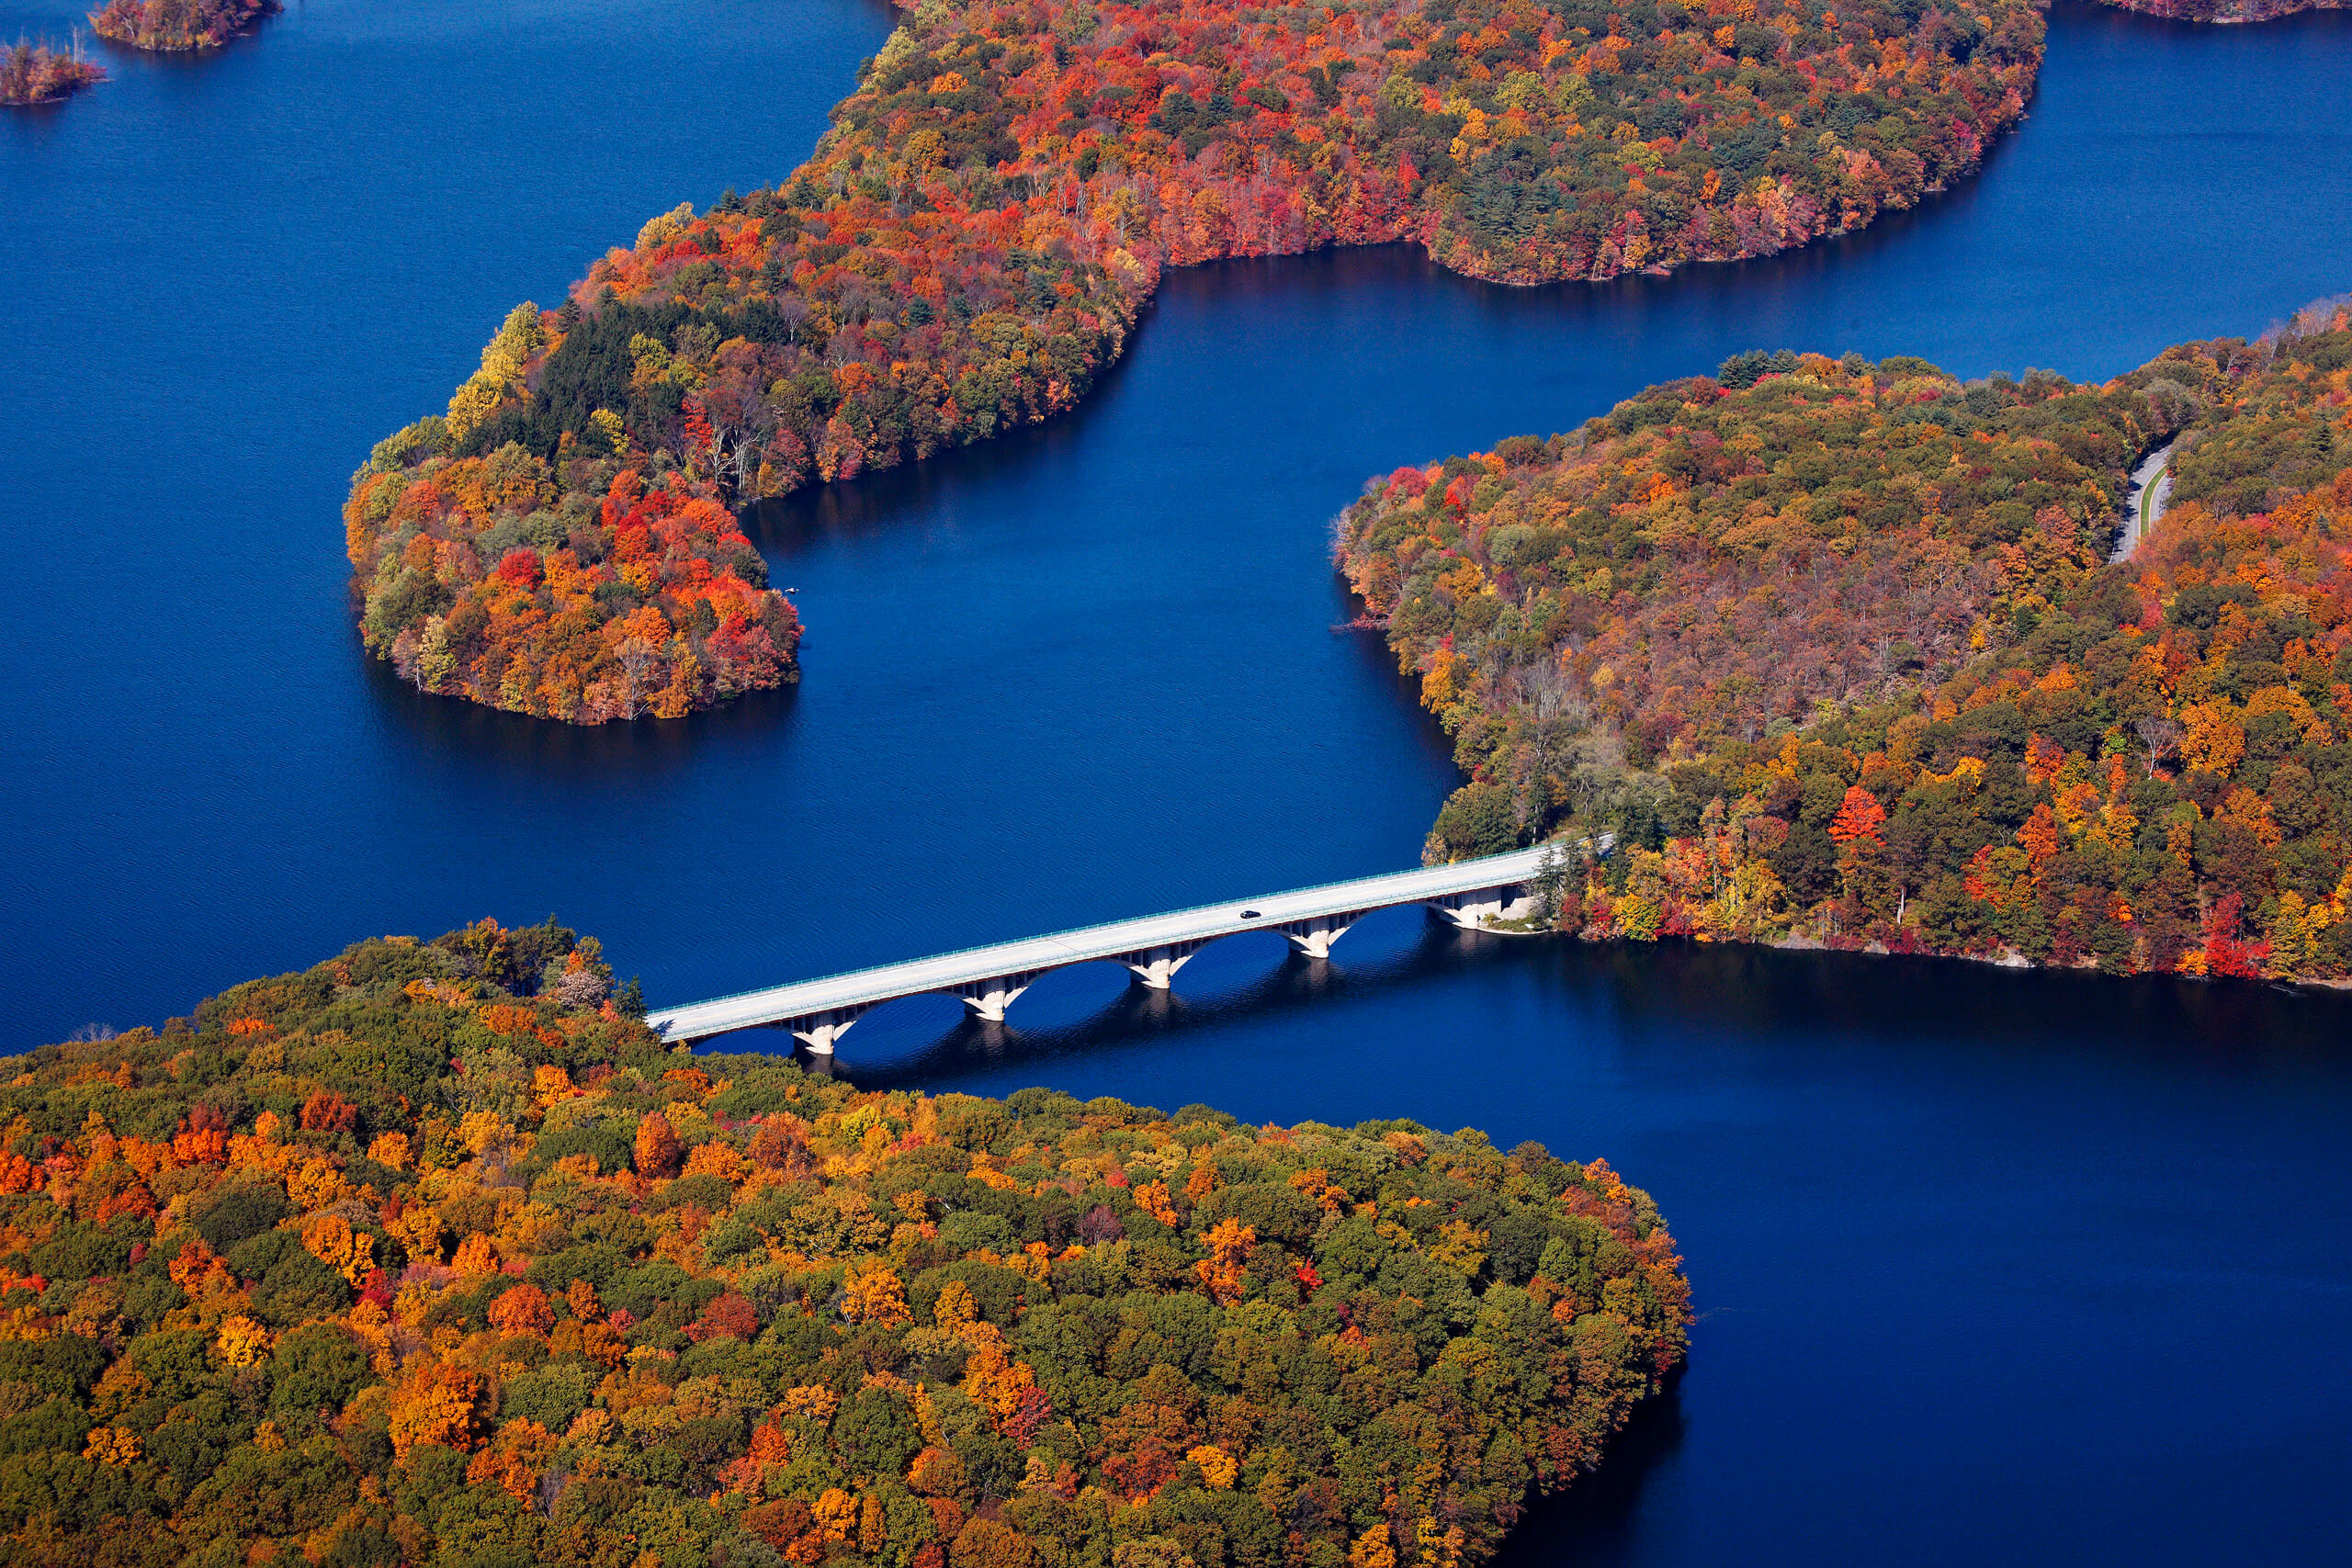 Aerial photo of a highway bridge across Kensico Reservoir in Westchester County with fall foliage.